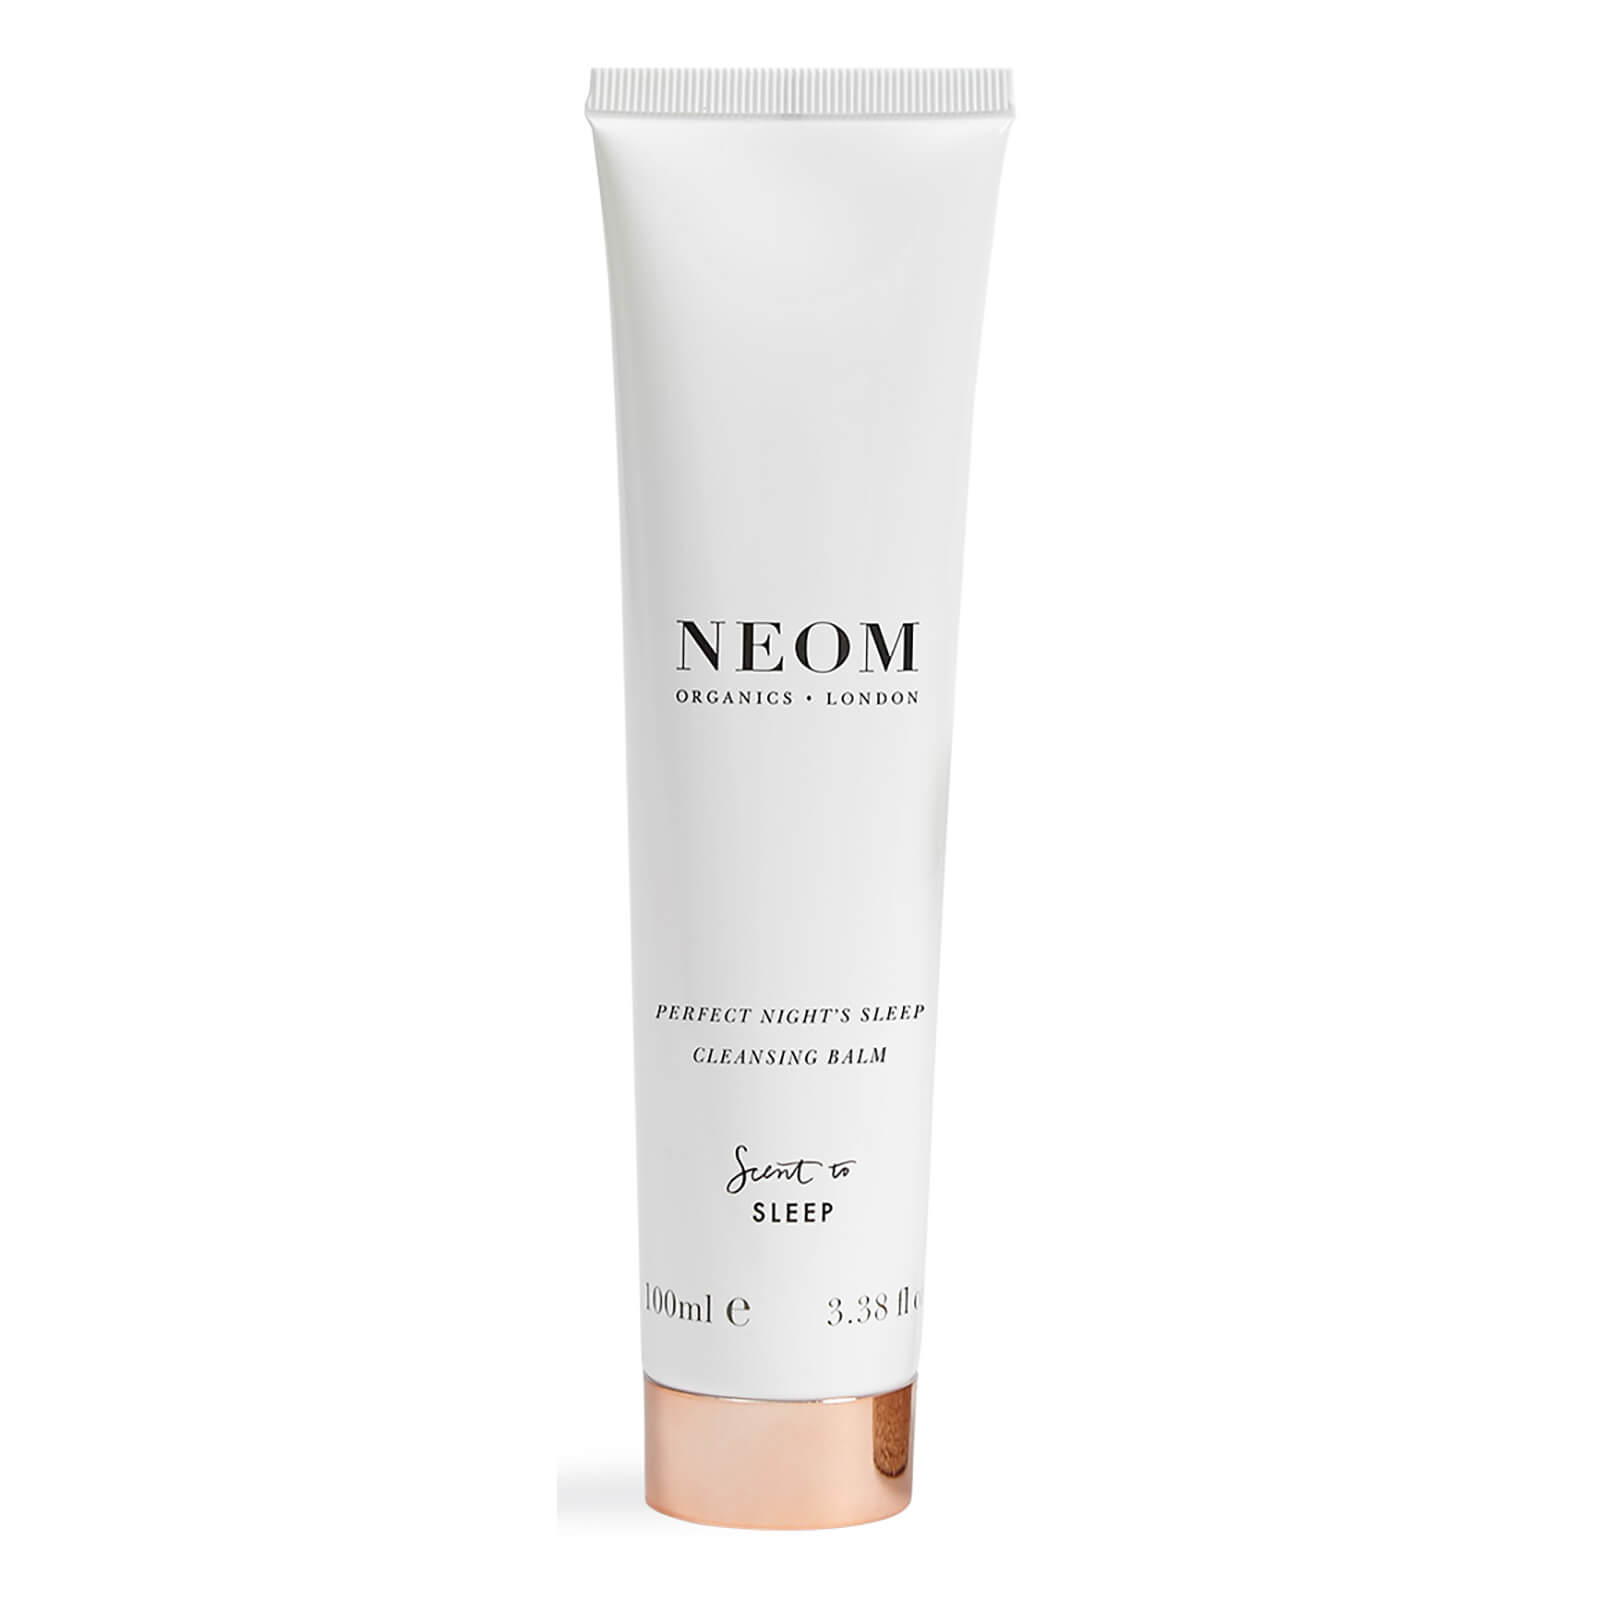 NEOM Organics London Perfect Night's Sleep Cleansing Balm 100ml